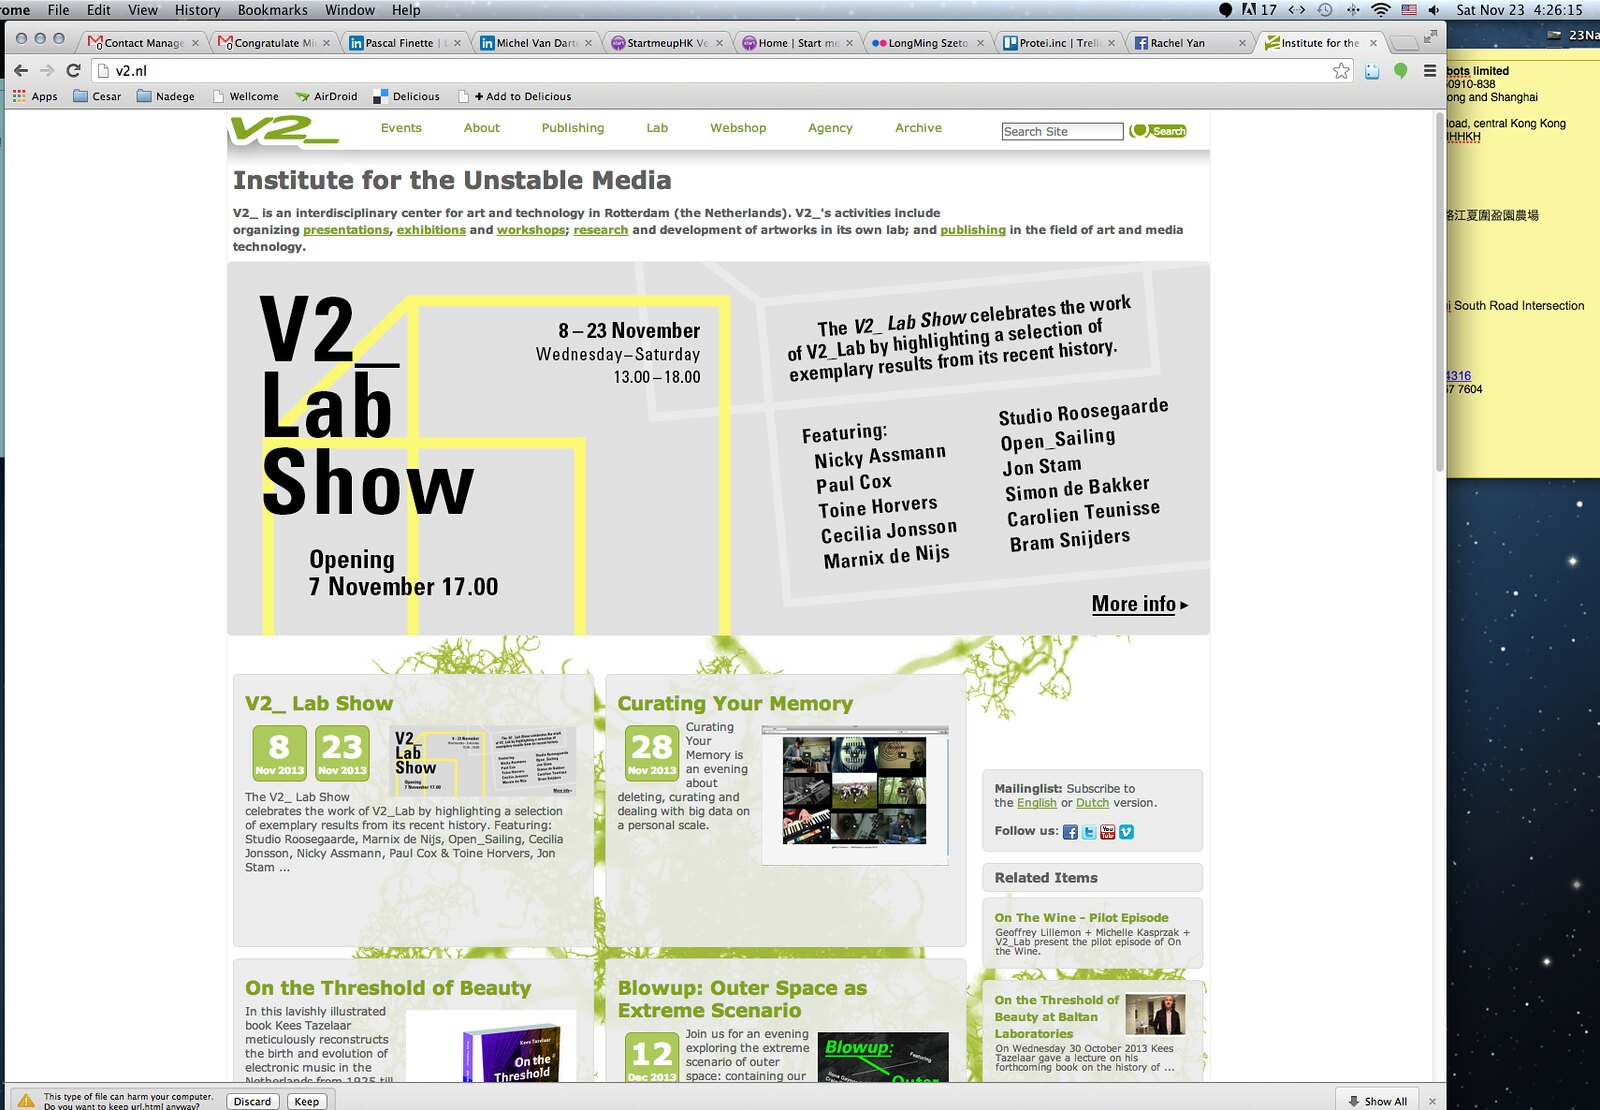 Protei & Open_Sailing - V2_ Lab Show 2013